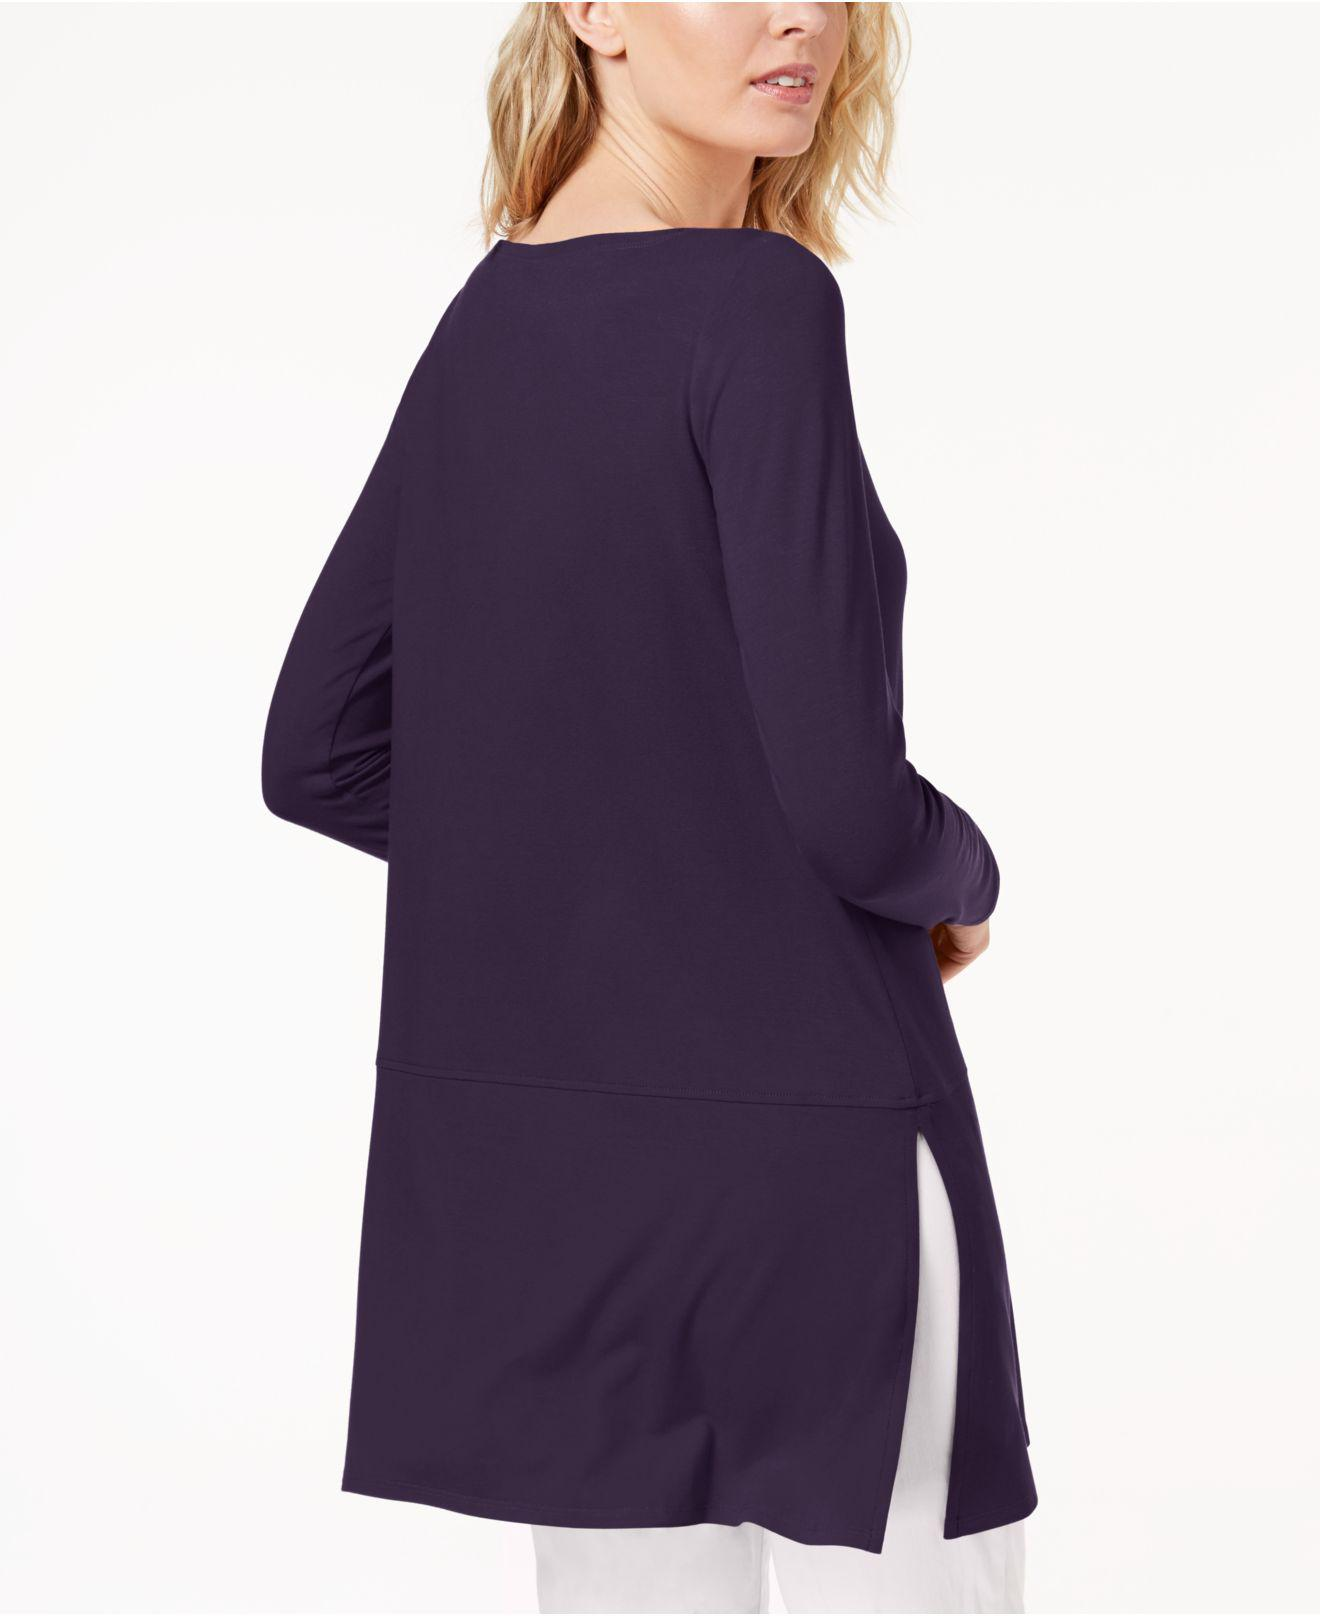 175b432ccfb Lyst - Eileen Fisher Stretch Jersey Boat-neck Top, Created For Macy's in  Purple